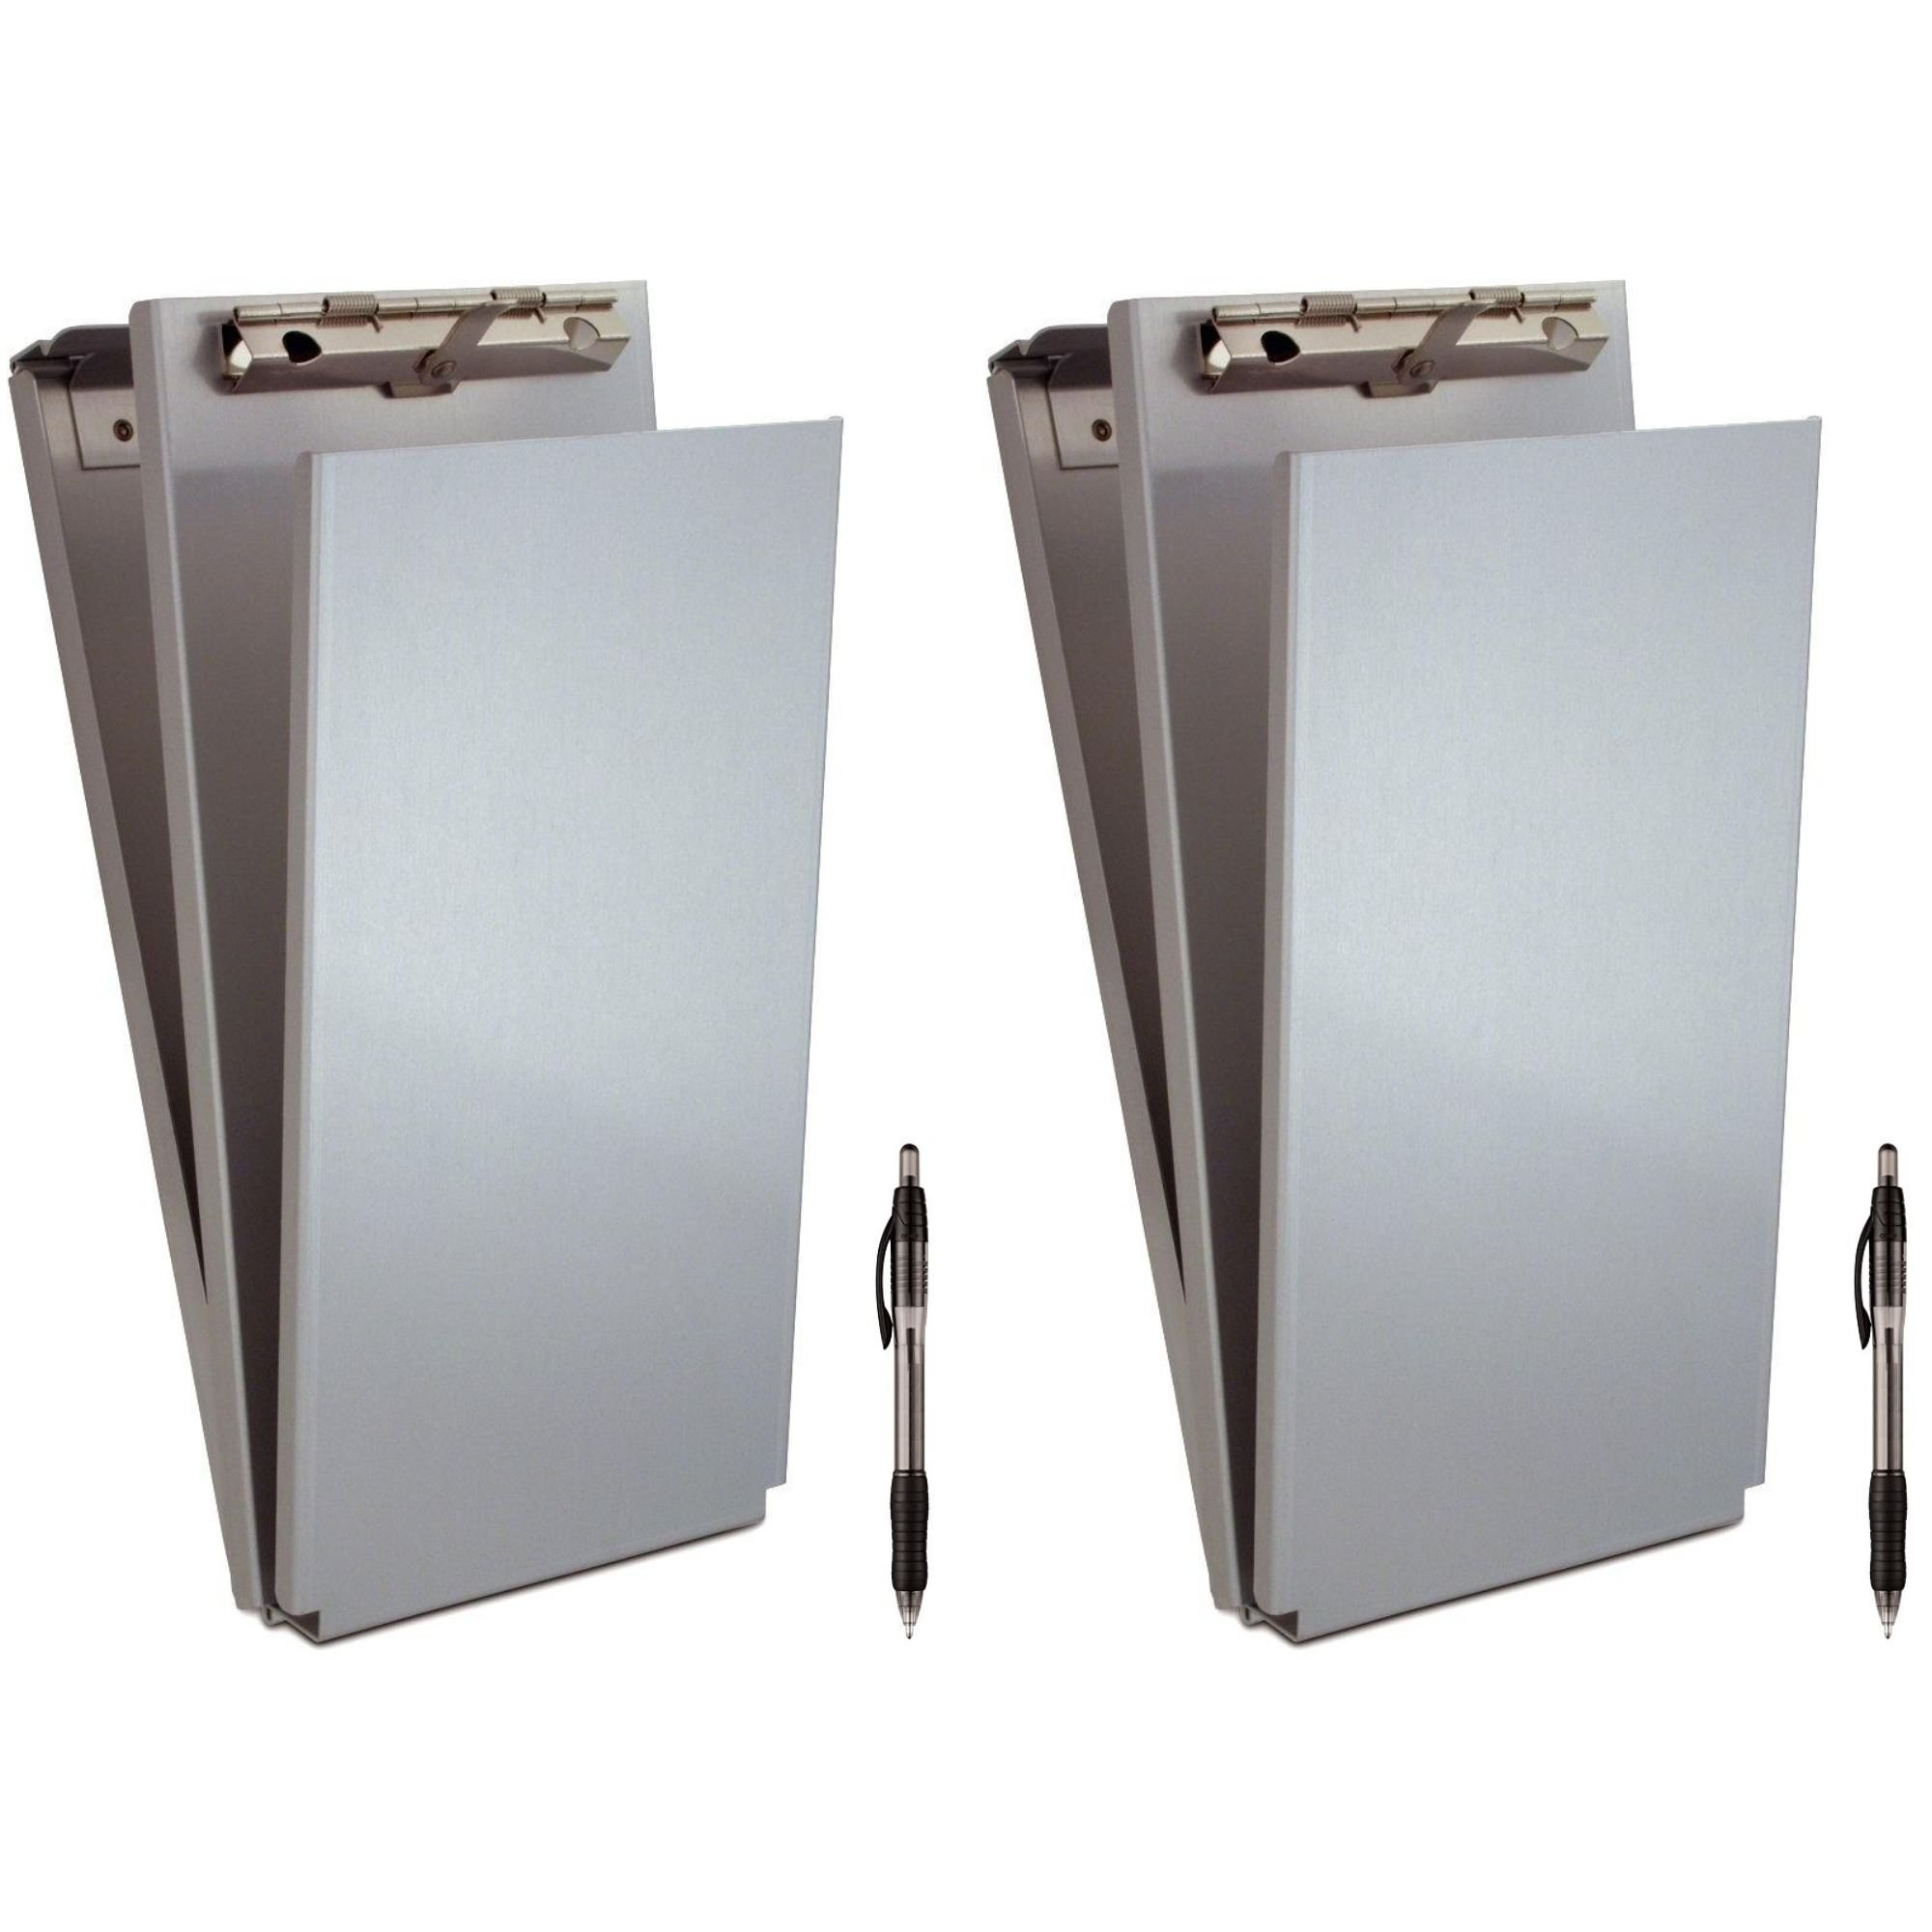 Saunders Recycled Aluminum A-Holder Form Holder, 4.25 x 9.5-Inches, 2 Holder with Black Ink Pen 2 Each by Saunders